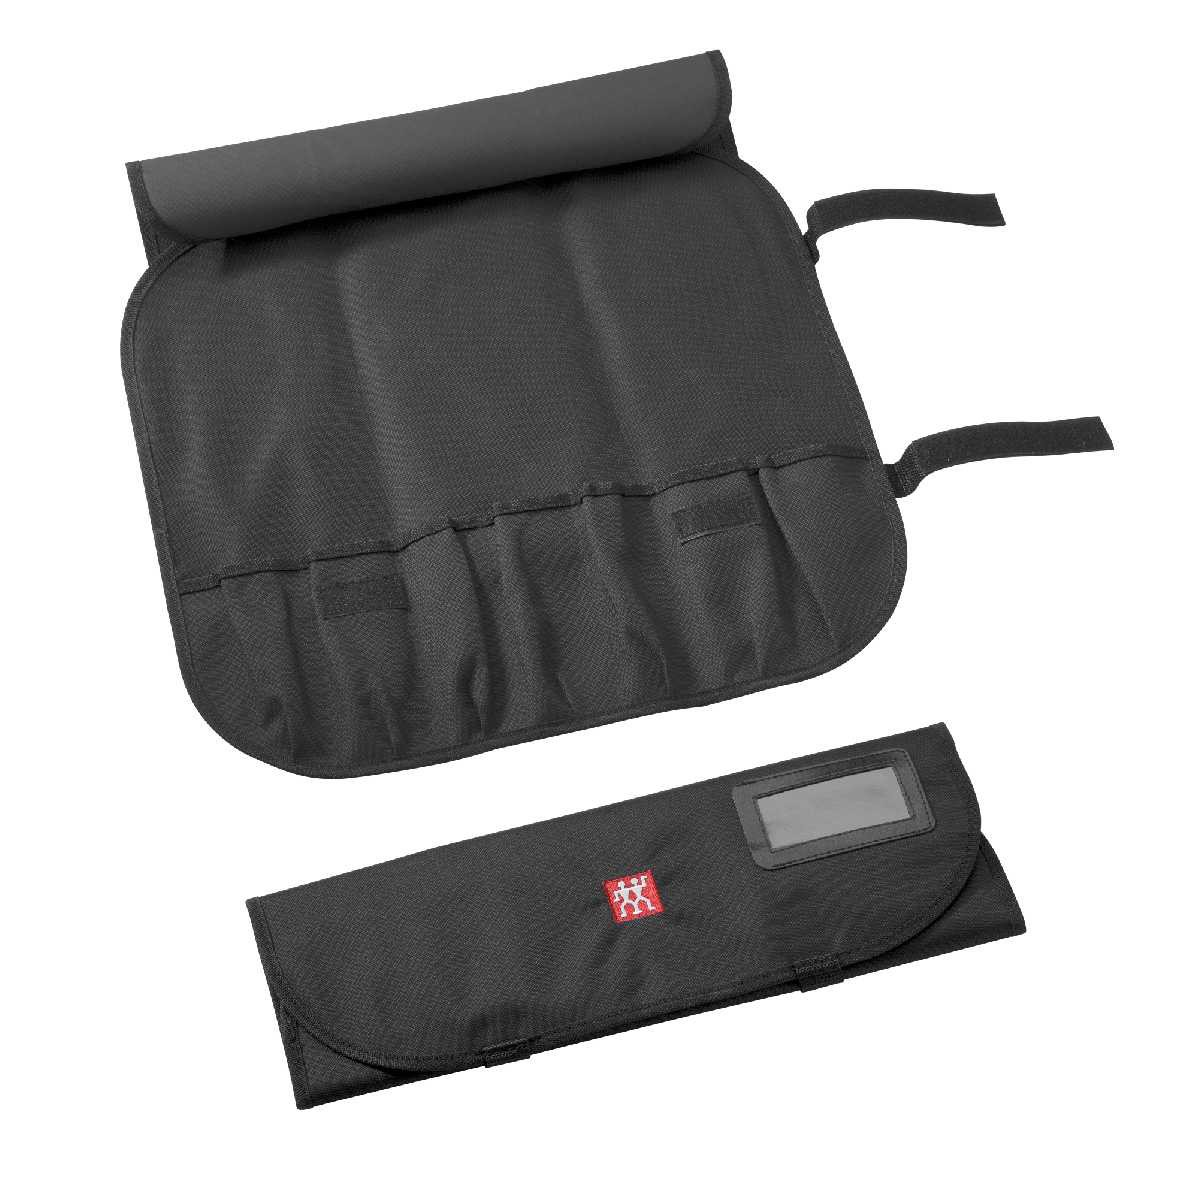 ZWILLING - Knife case